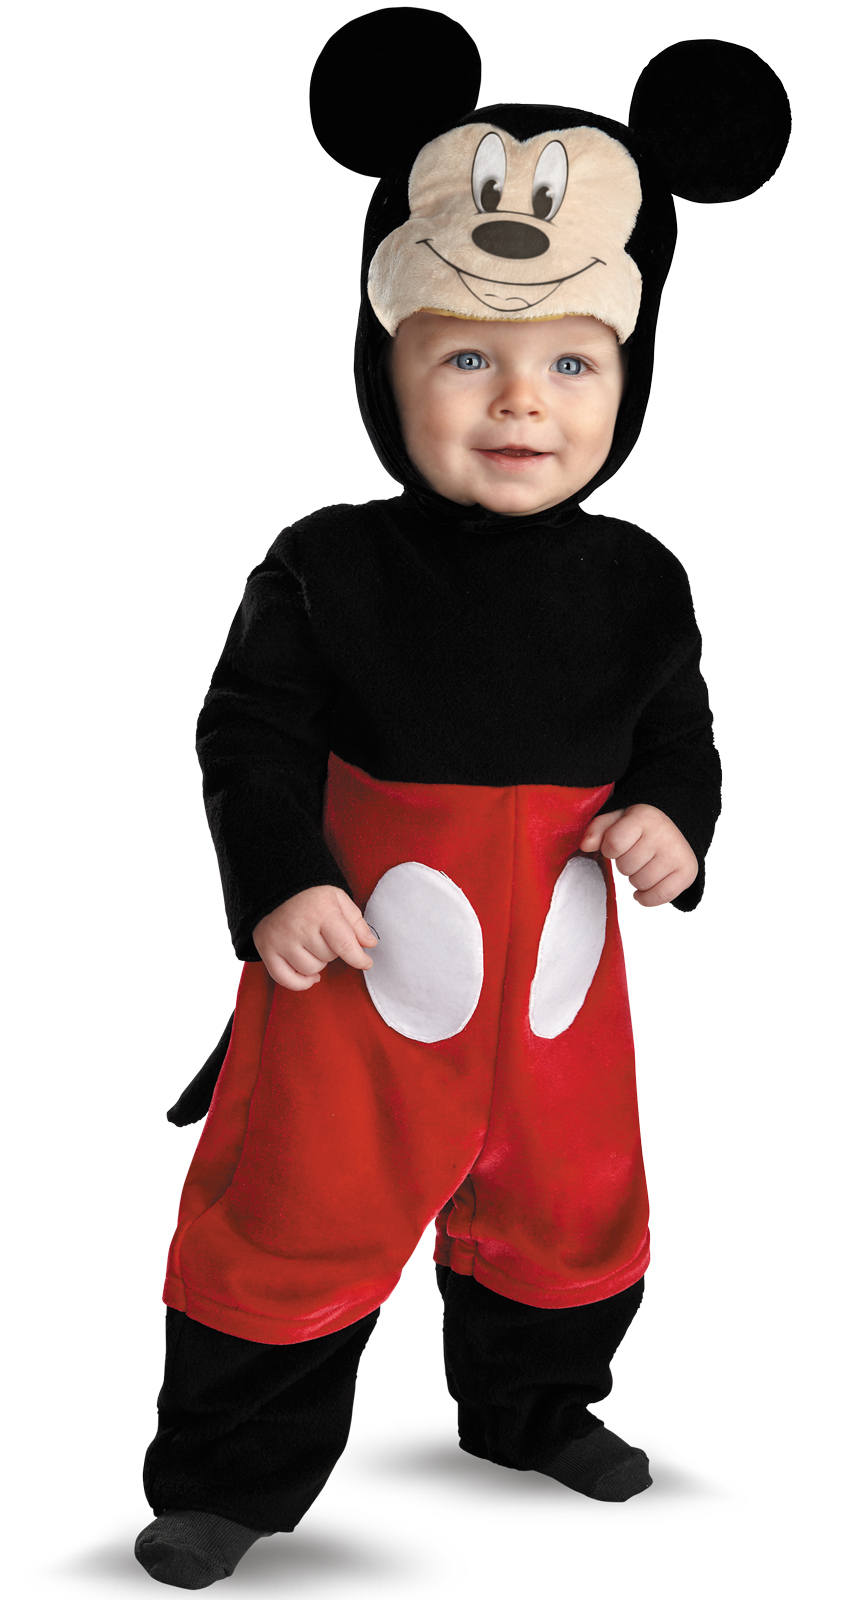 disney mickey mouse infant costume buycostumescom - Infant Mickey Mouse Halloween Costume